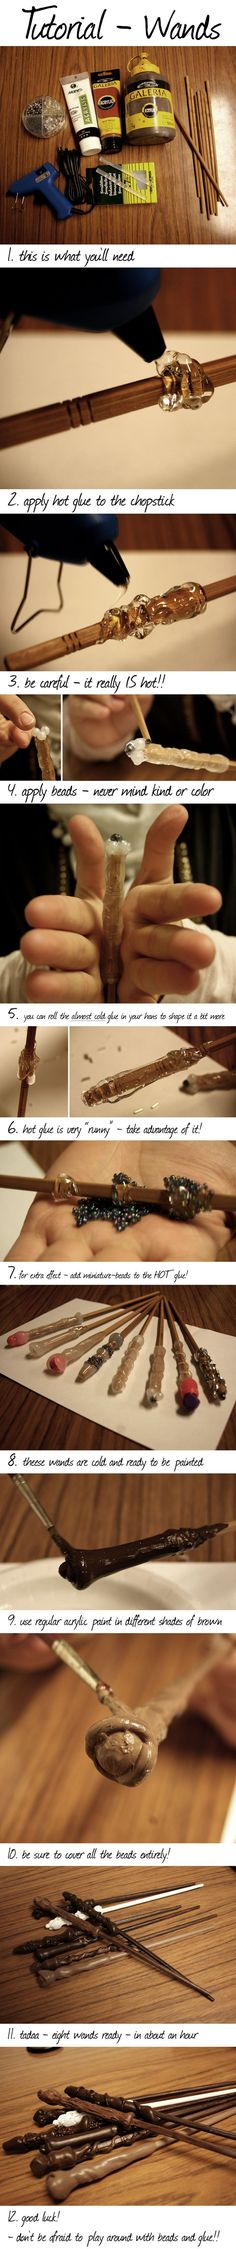 Harry Potter wand picture tutorial. How to make a wand with chopsticks and hot glue.